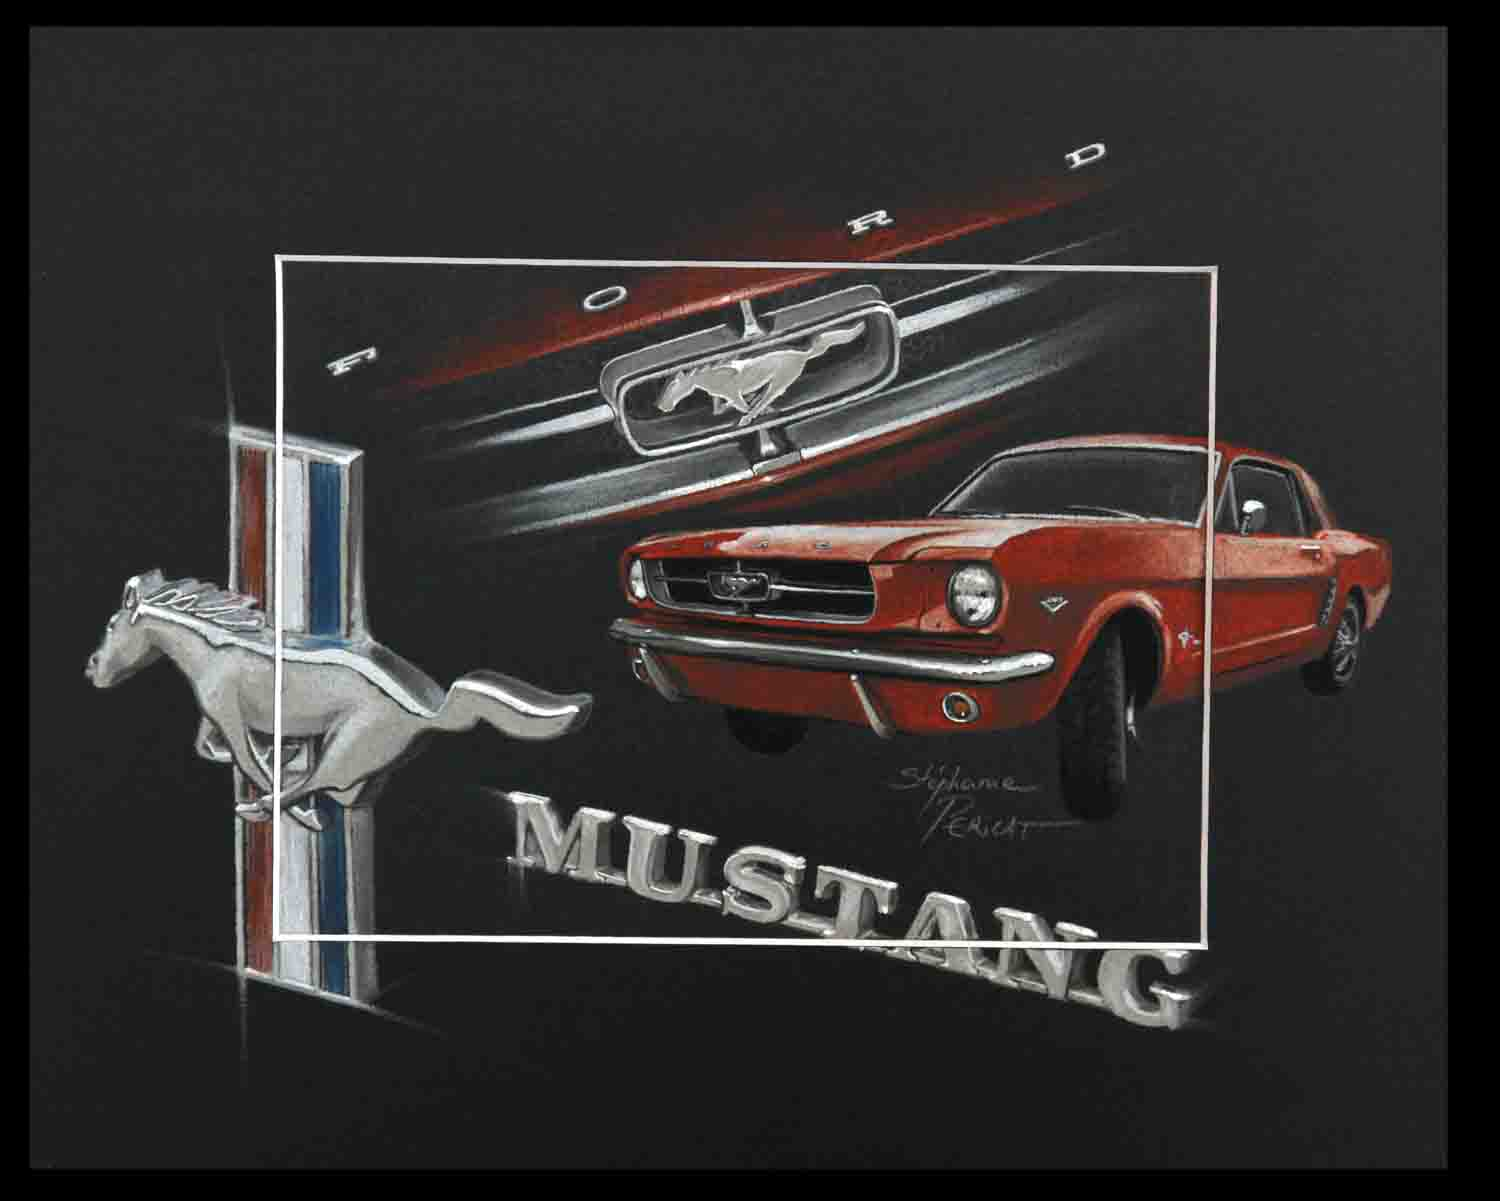 FORD MUSTANG ROUGE (red) - pastel sec (soft pastel) - 24x30cm - AV for sale